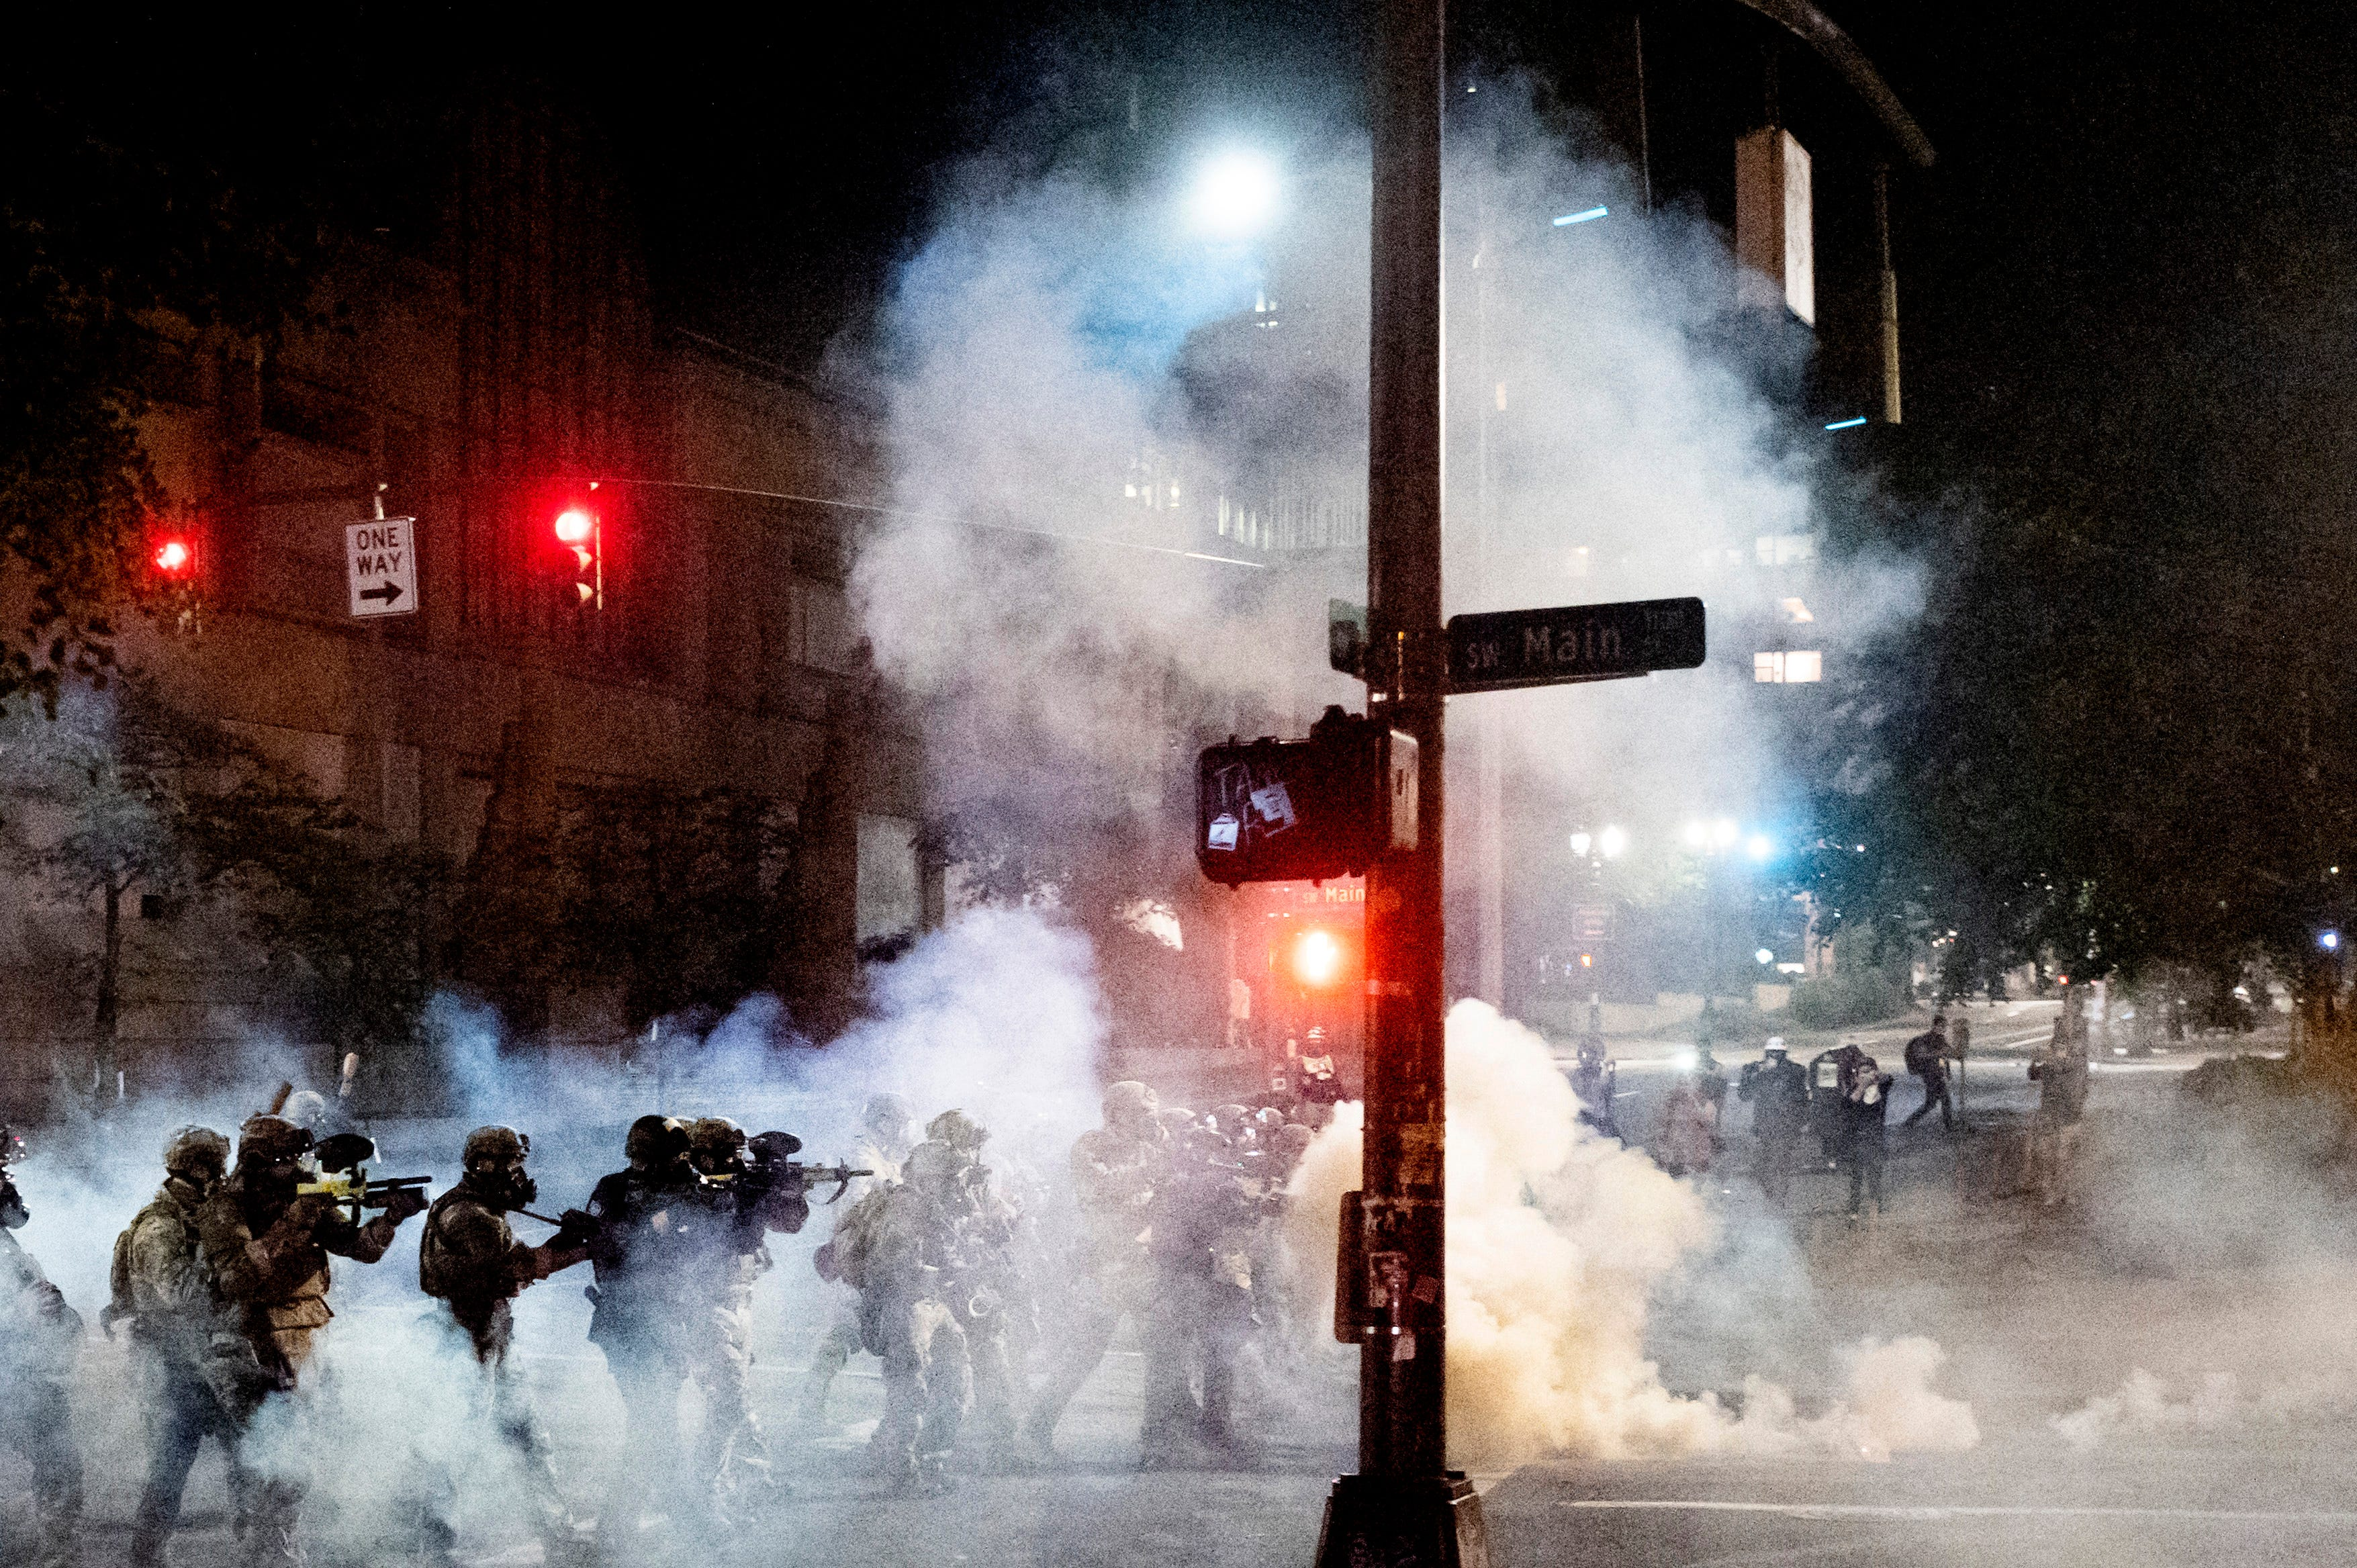 Federal agents use crowd control munitions to disperse Black Lives Matter protesters near the Mark O. Hatfield United States Courthouse on Monday, July 20, 2020, in Portland, Oregon.